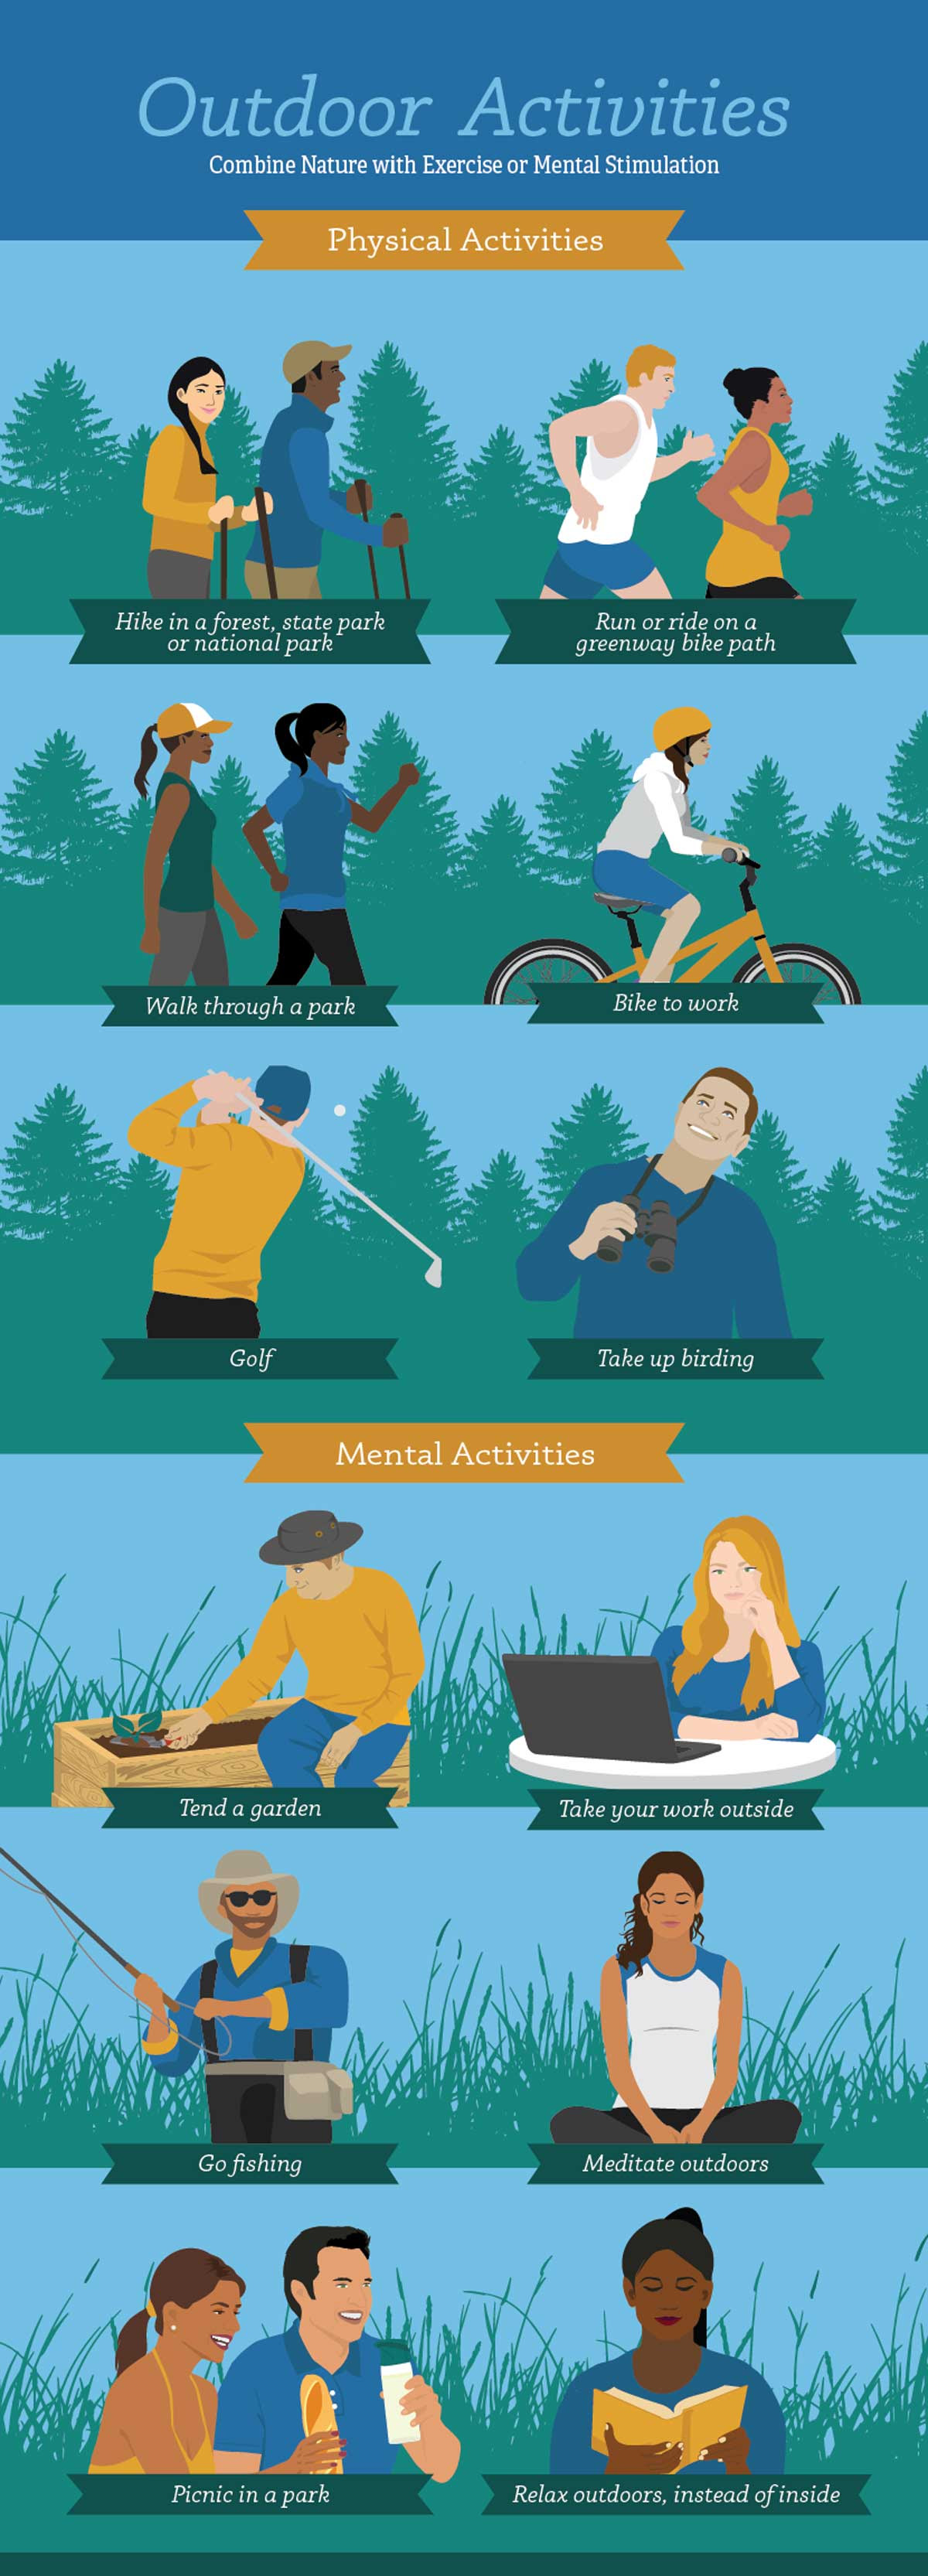 Mental Health Benefits of the Great Outdoors